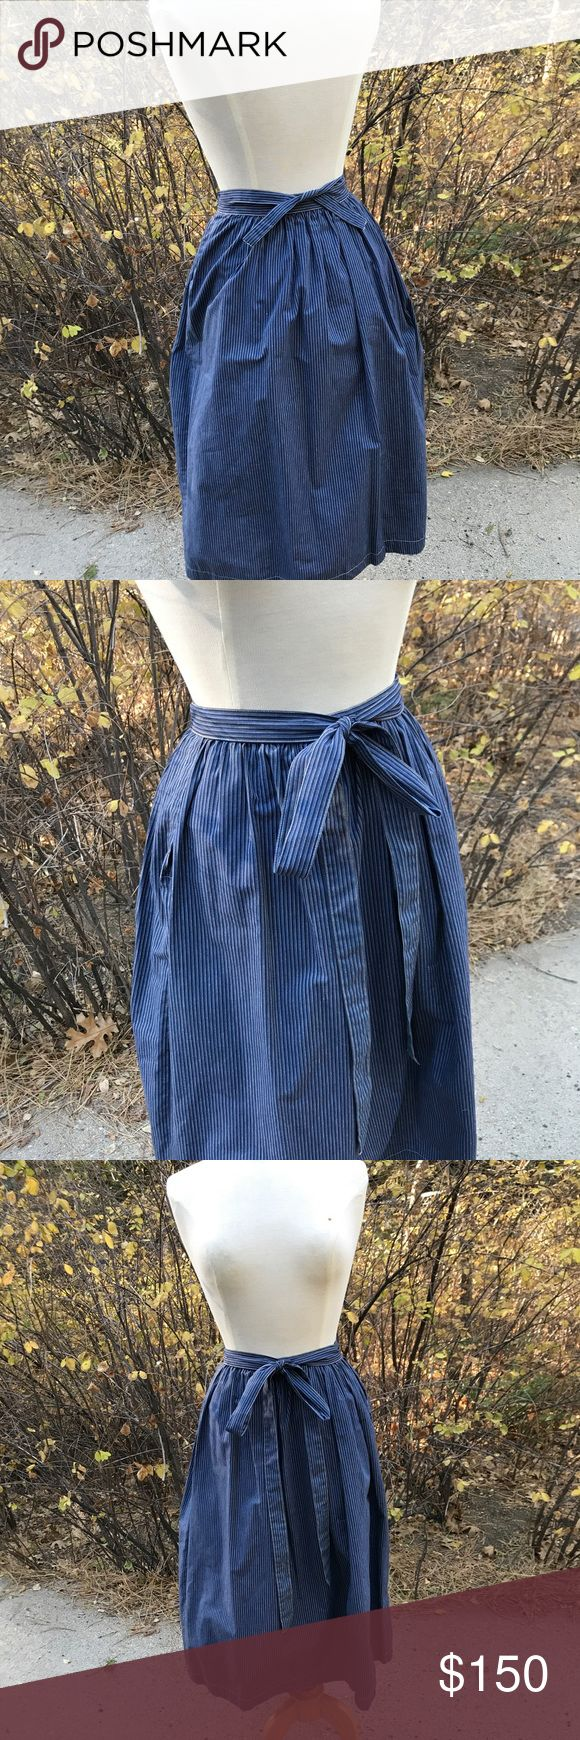 Kenzo Jap skirt with side ties Vintage Kenzo Jap size 40 Cotton Day skirt. Royal Blue and White stripe. Very popular European Style made in France. Beautiful cotton. This quality you just don't find easily. Kenzo Skirts Midi